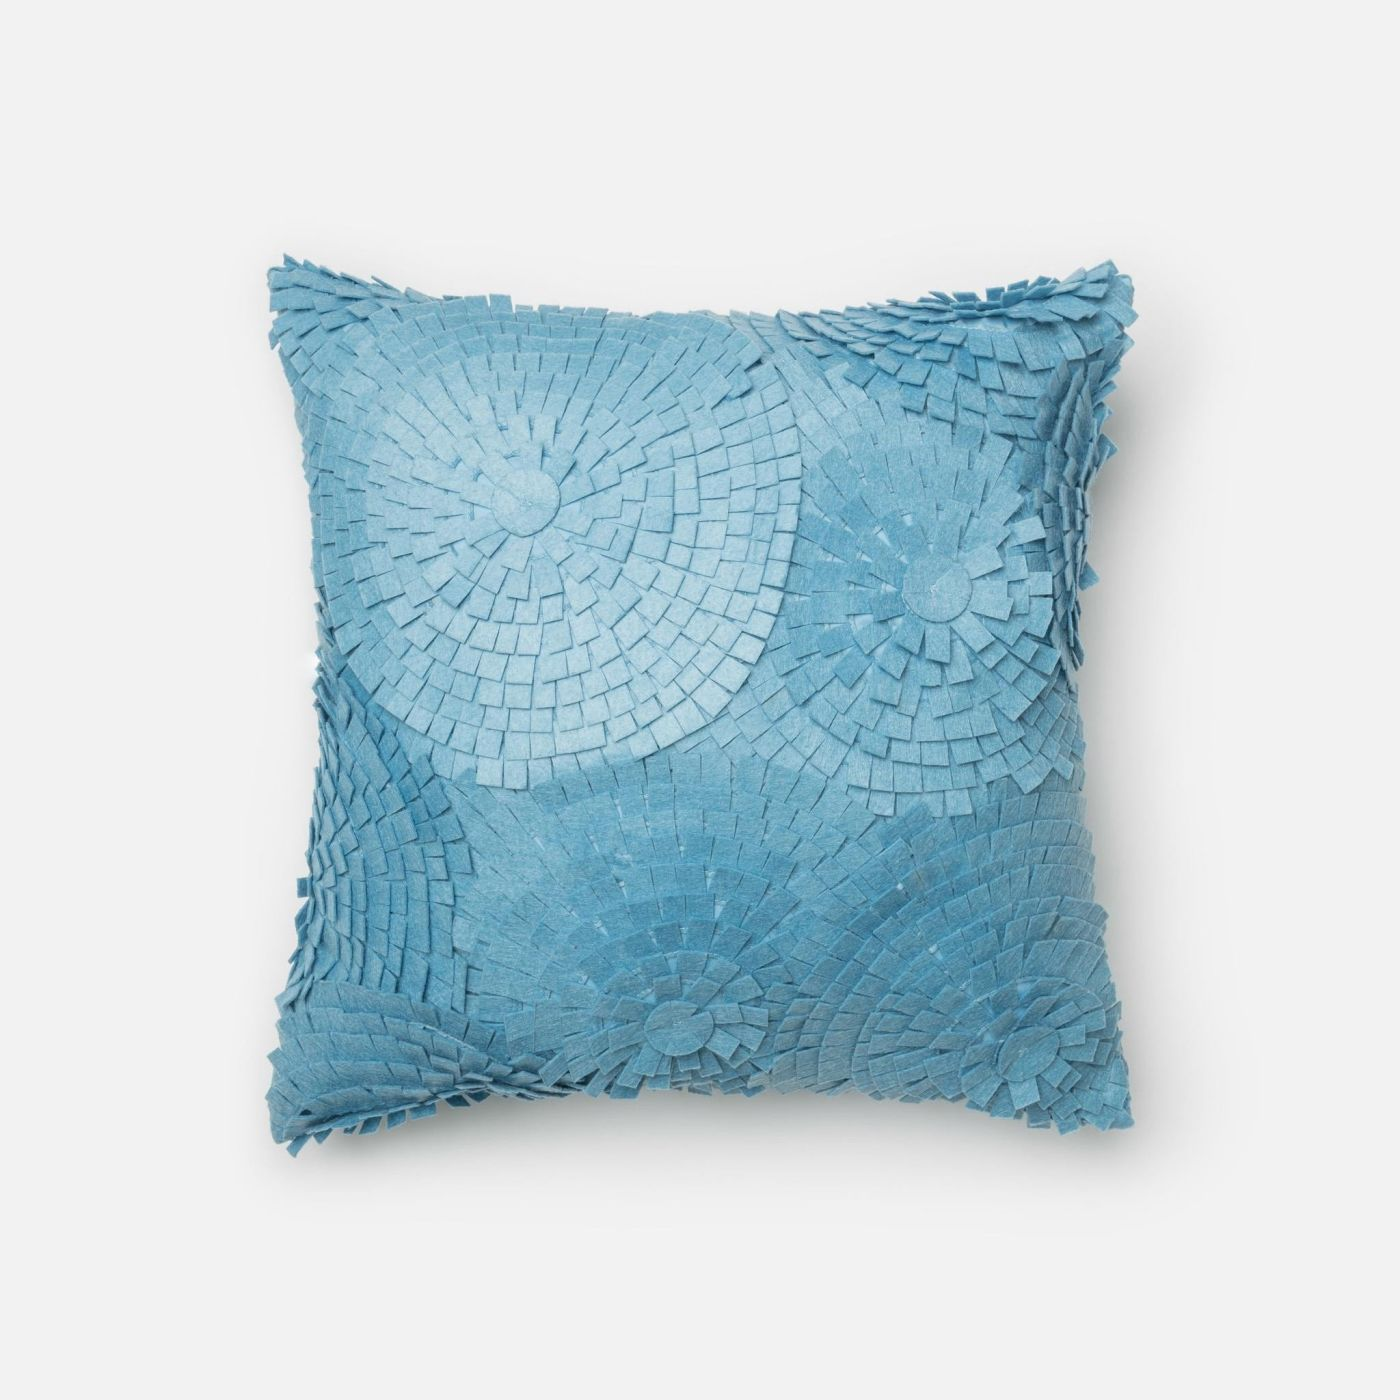 Throw Pillow Warehouse : Loloi Rugs Loloi Lt. Blue Decorative Throw Pillow (P0221) PSETP0221LB00PIL1. Only $59.00 at ...